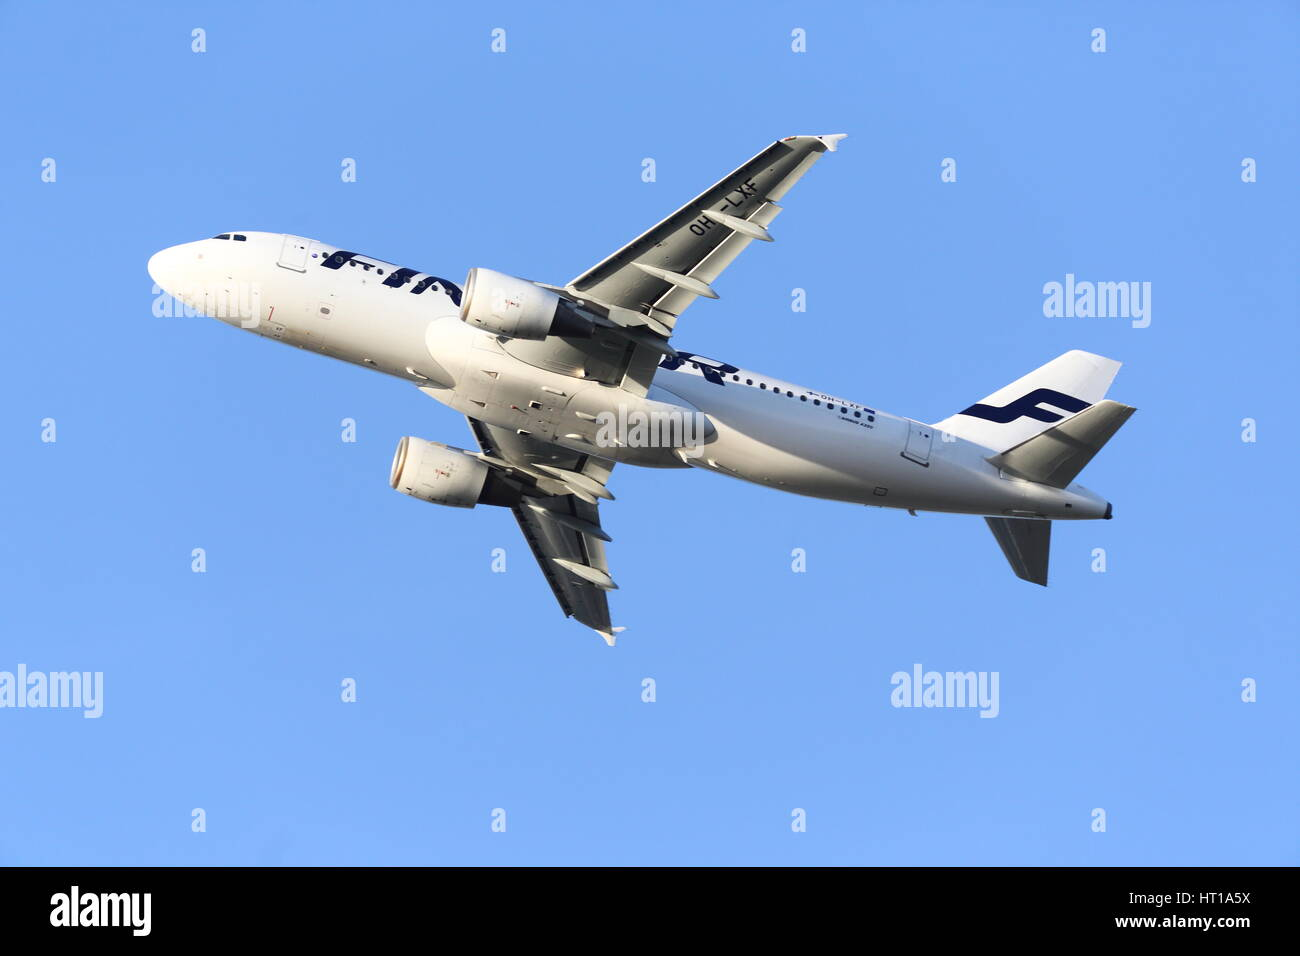 Finnair Airbus A320 OH-LXF departing from London Heathrow Airport, UK - Stock Image